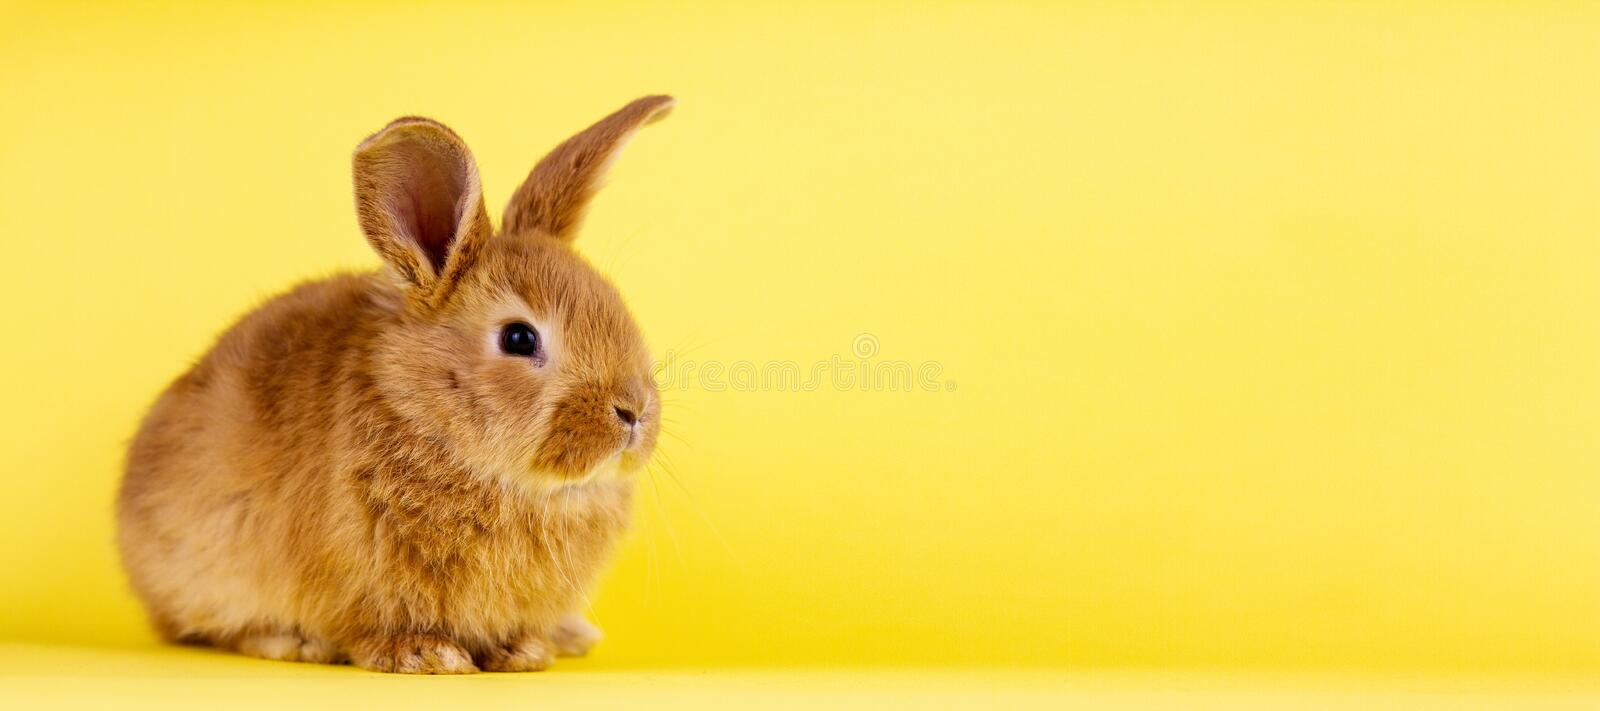 Little easter lively rabbit on a yellow background. Red fluffy rabbit on a yellow background, banner picture. Easter Bunny royalty free stock images